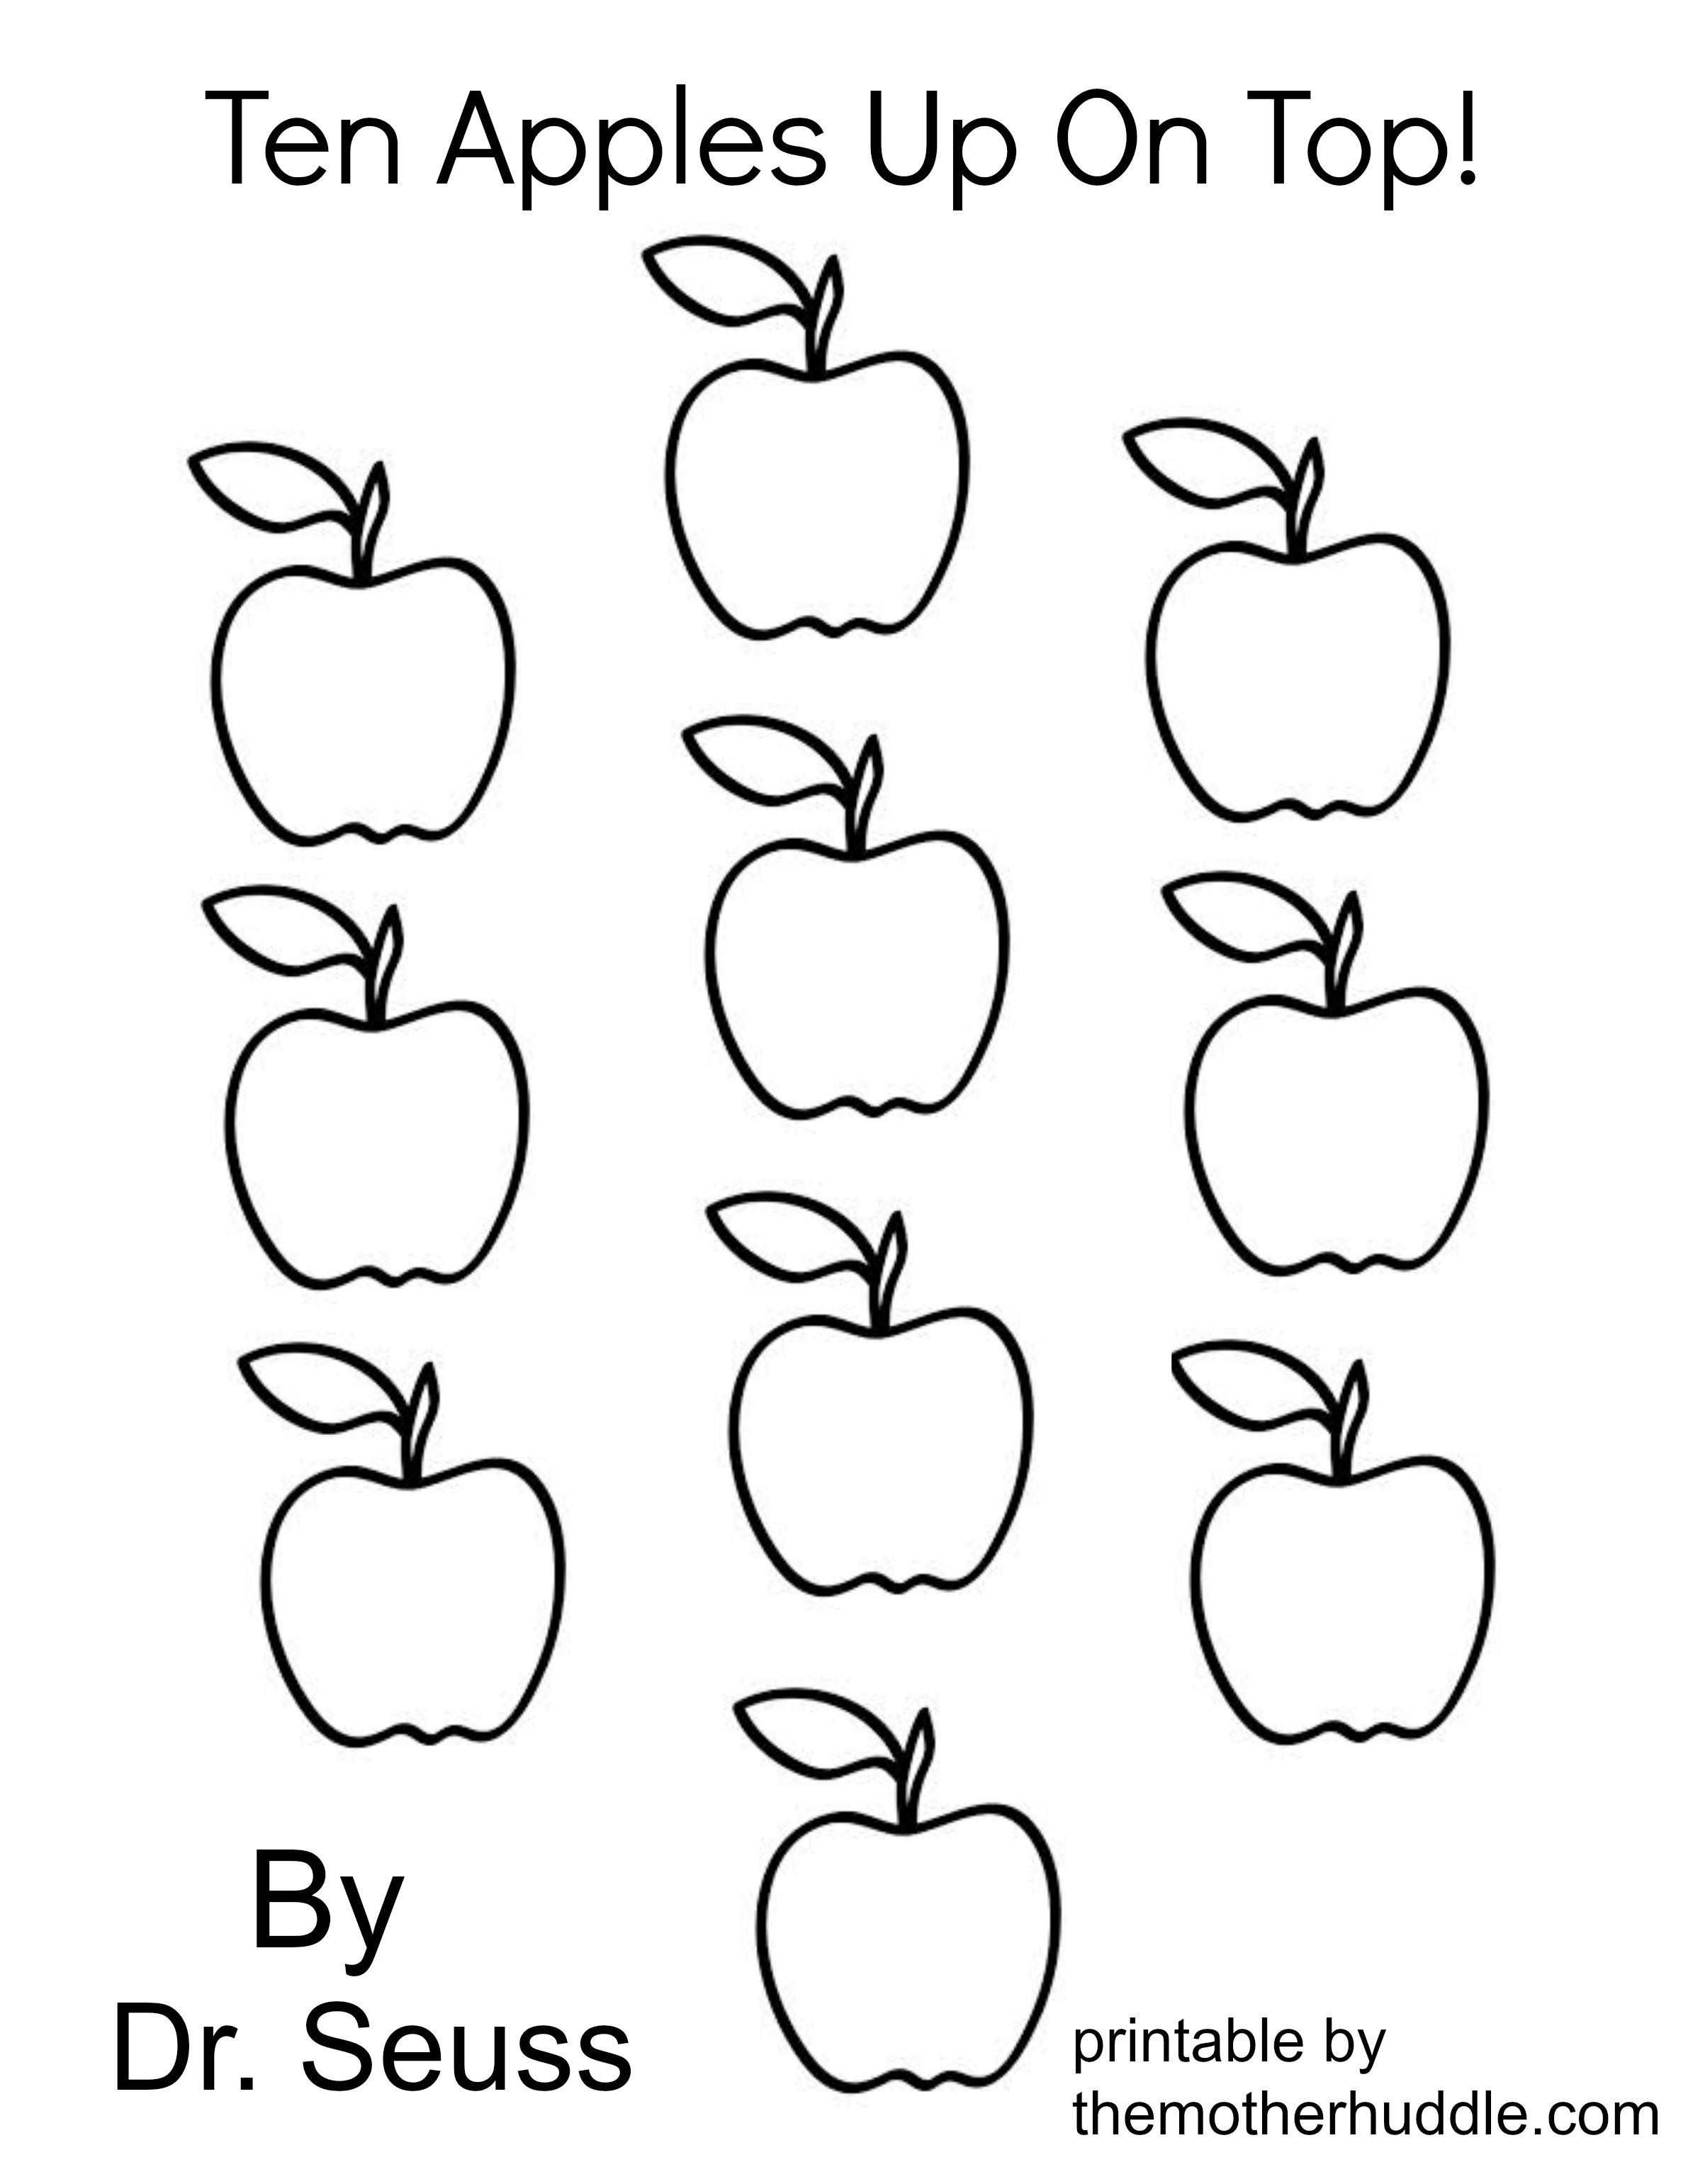 A For Apple Practice Writing Printable Sheet Woman Of